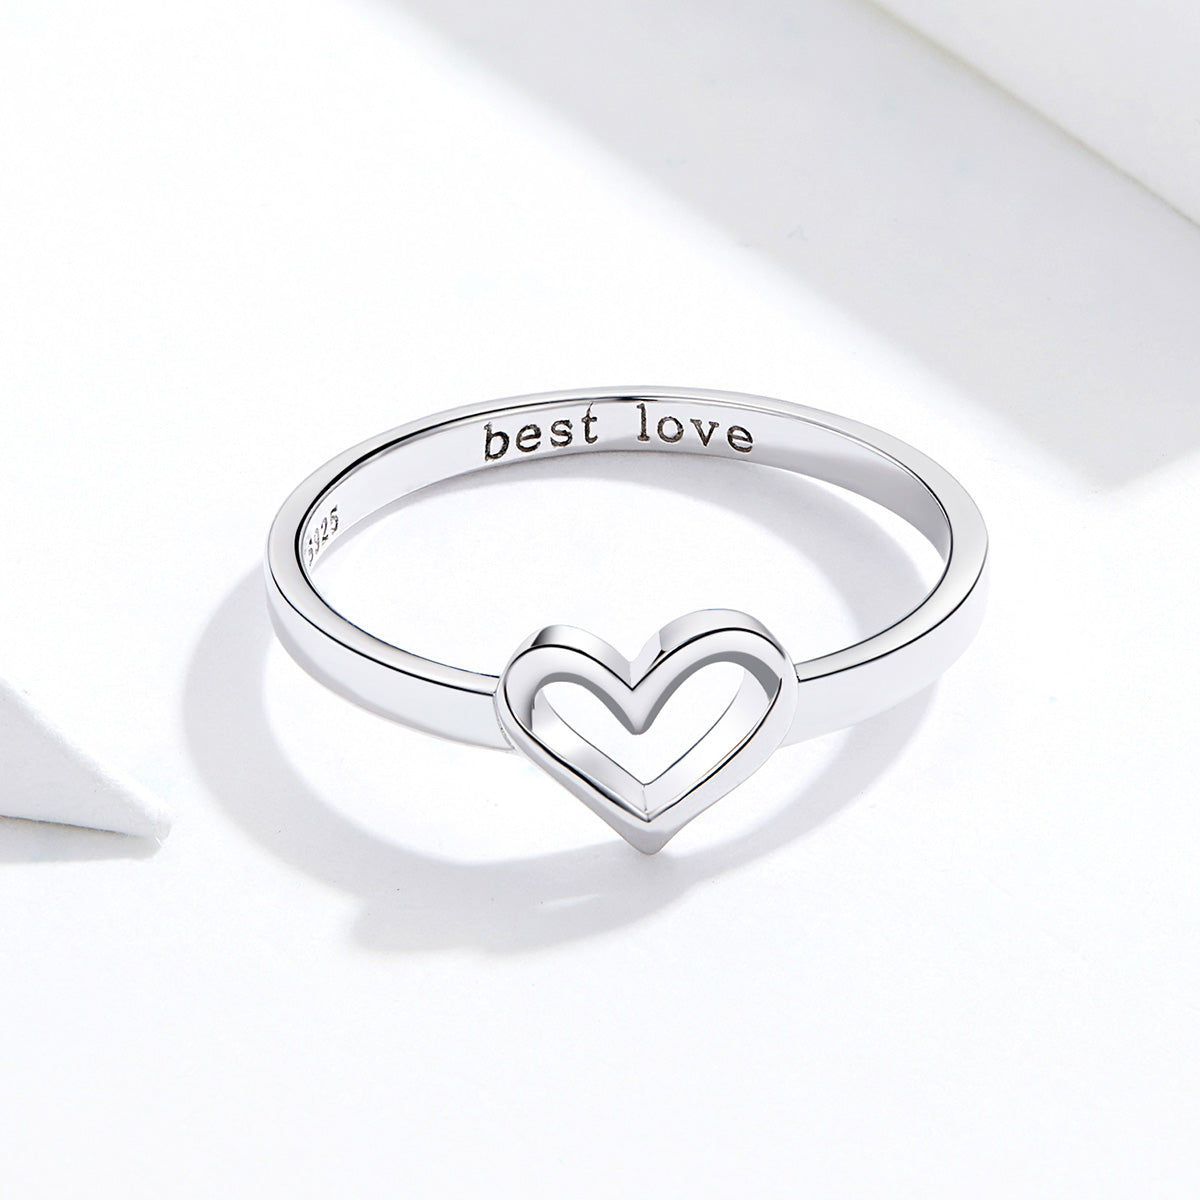 S925 sterling silver love shape ring white gold plated ring